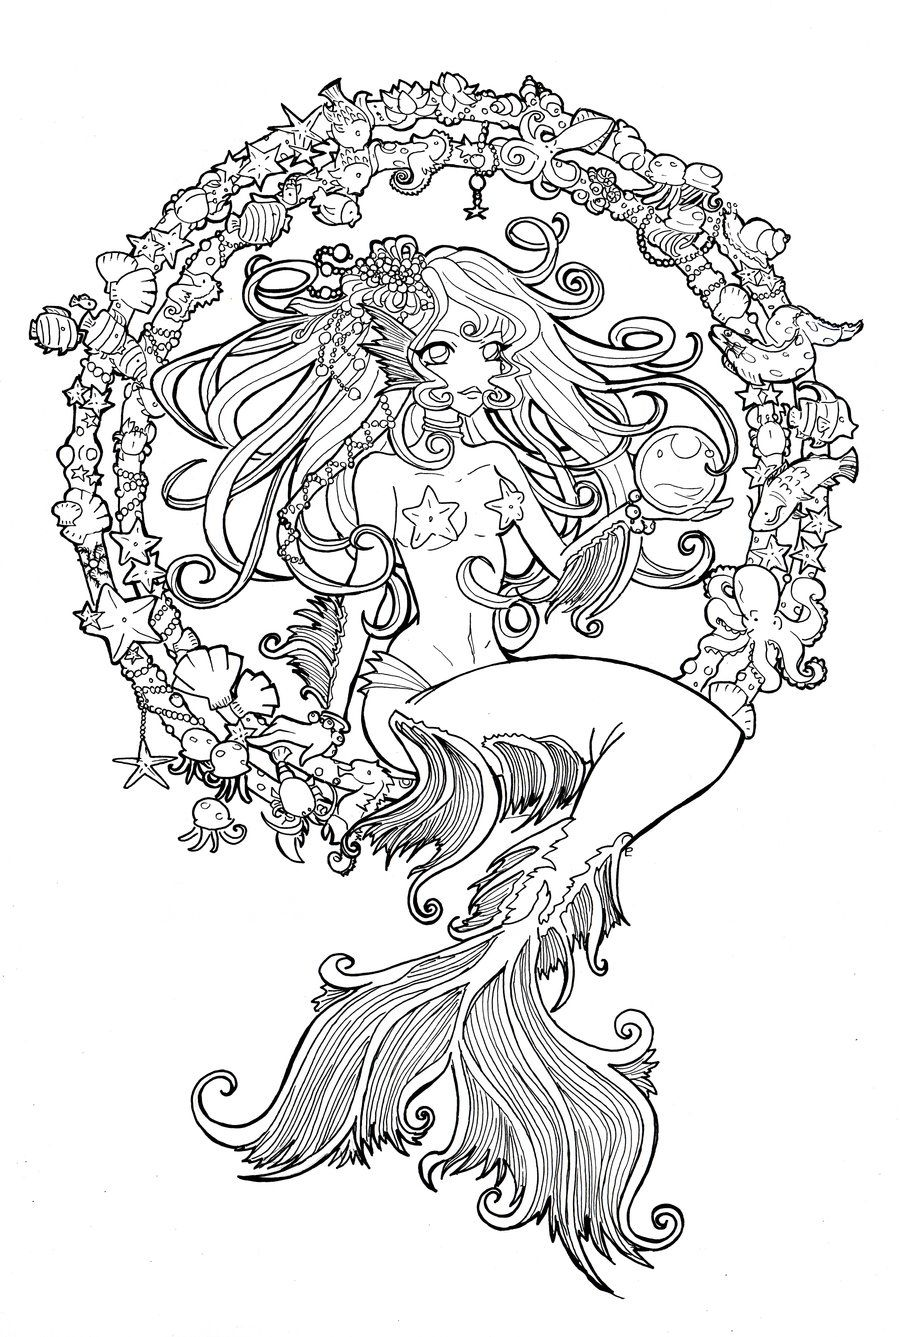 Free Printable Coloring Pages For Teenage Girls Coloring Pages Valentine Coloring Pages Cute Coloring Pages